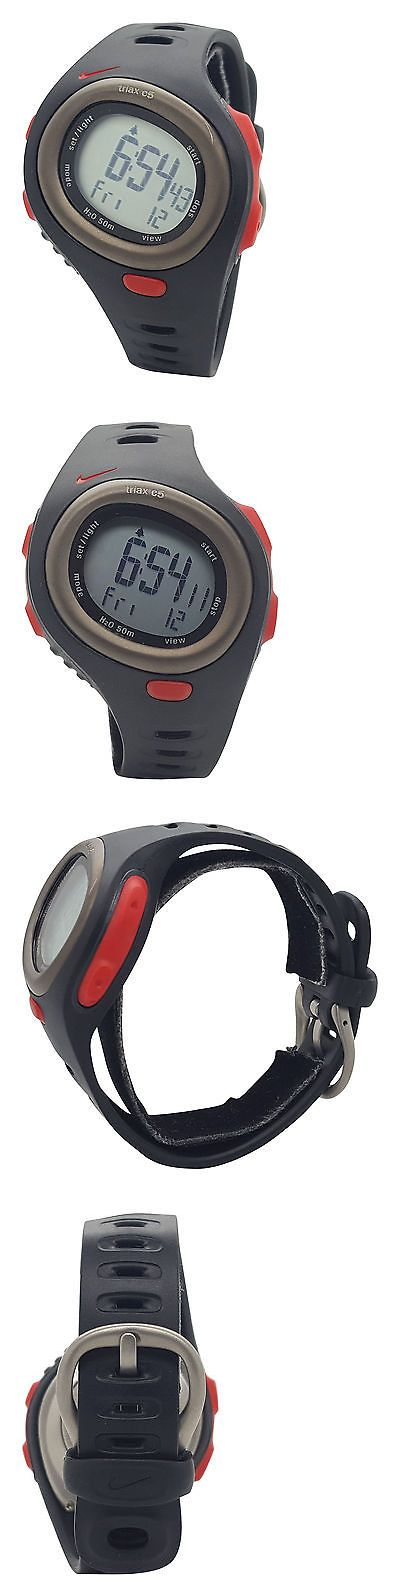 Heart Rate Monitors 15277: Nike Triax Hrm C5 Sm0015 Black Sport Red Silicone Heart Rate Monitor Watch -> BUY IT NOW ONLY: $49.95 on eBay!